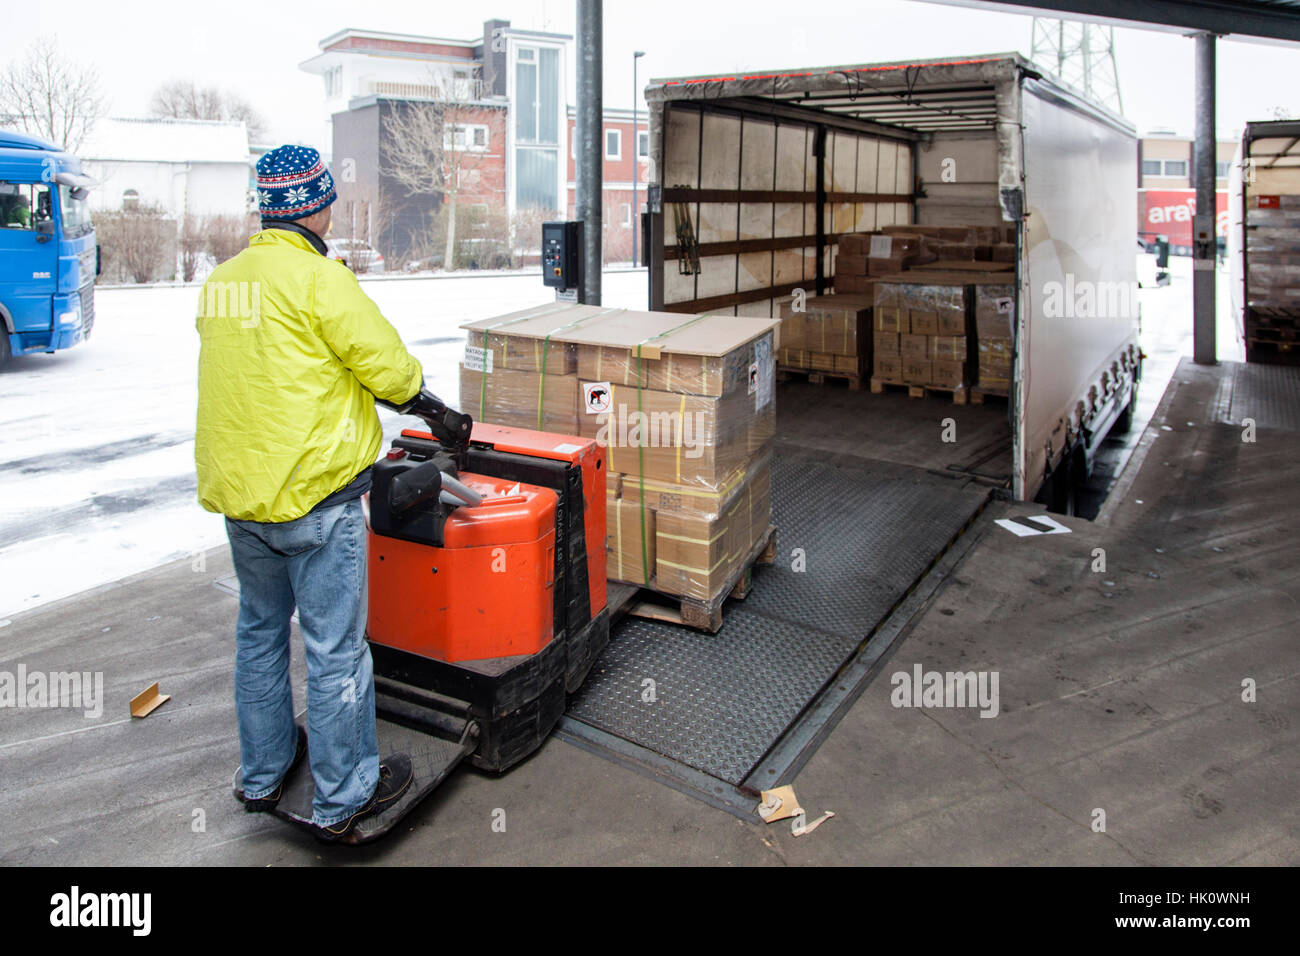 Loading a truck on the ramp - Stock Image